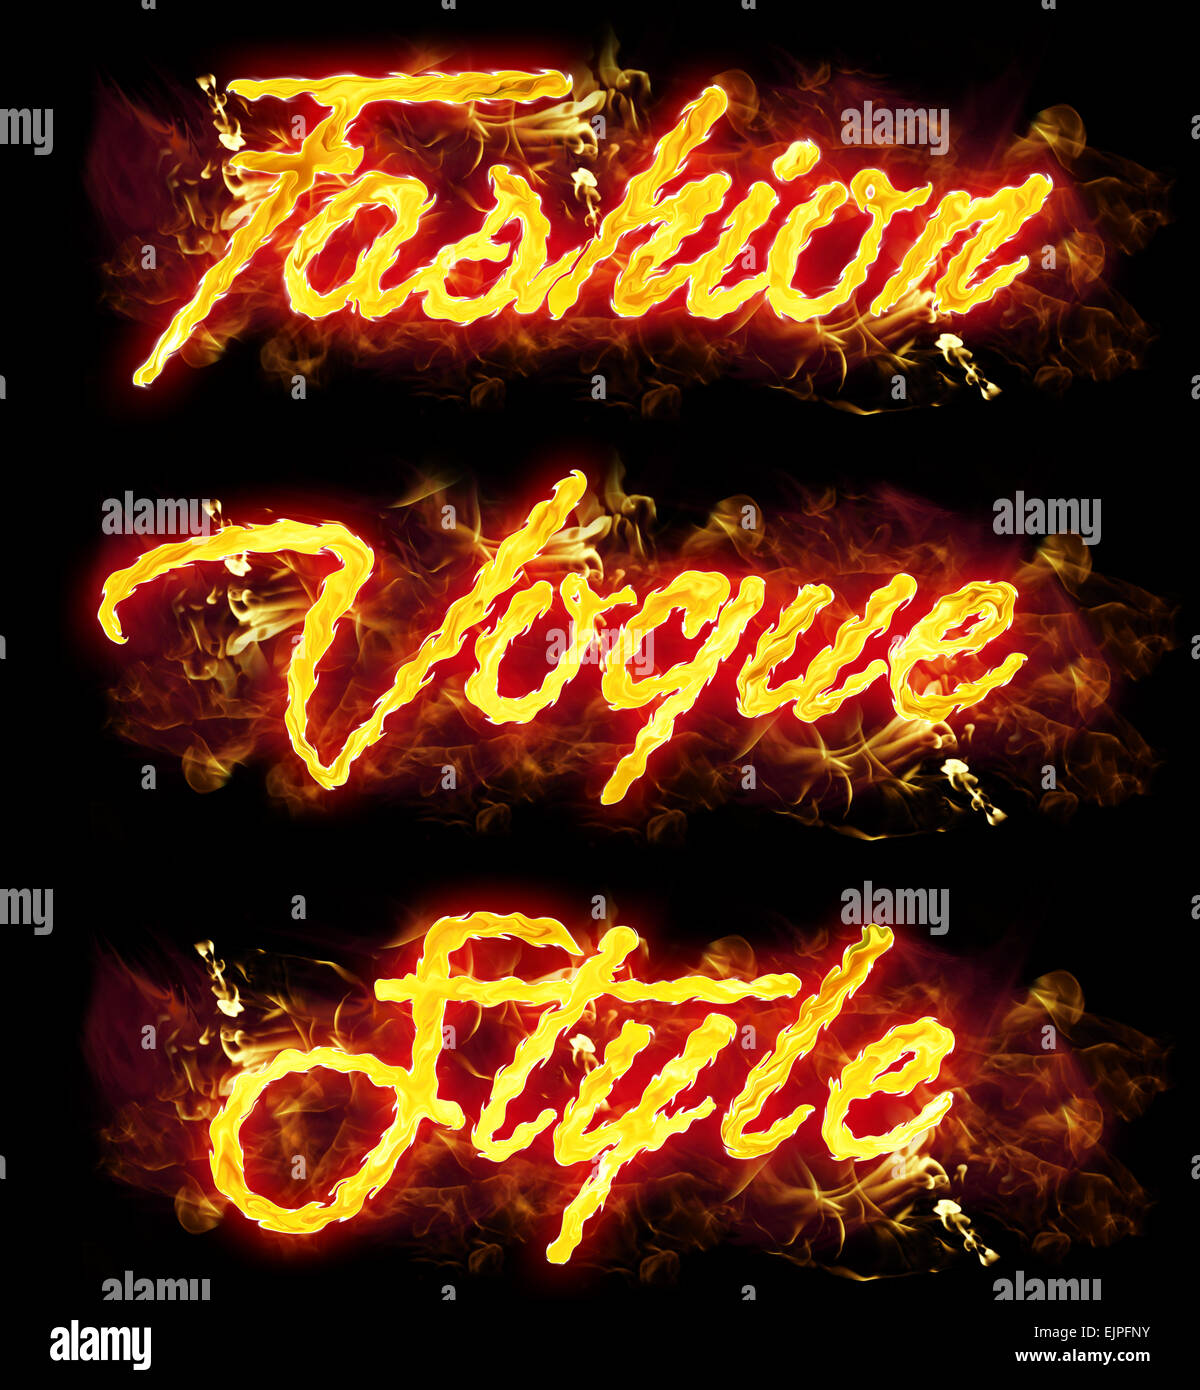 Fashion Style Vogue incendie mot badges avec flammes brûlantes. Photo Stock